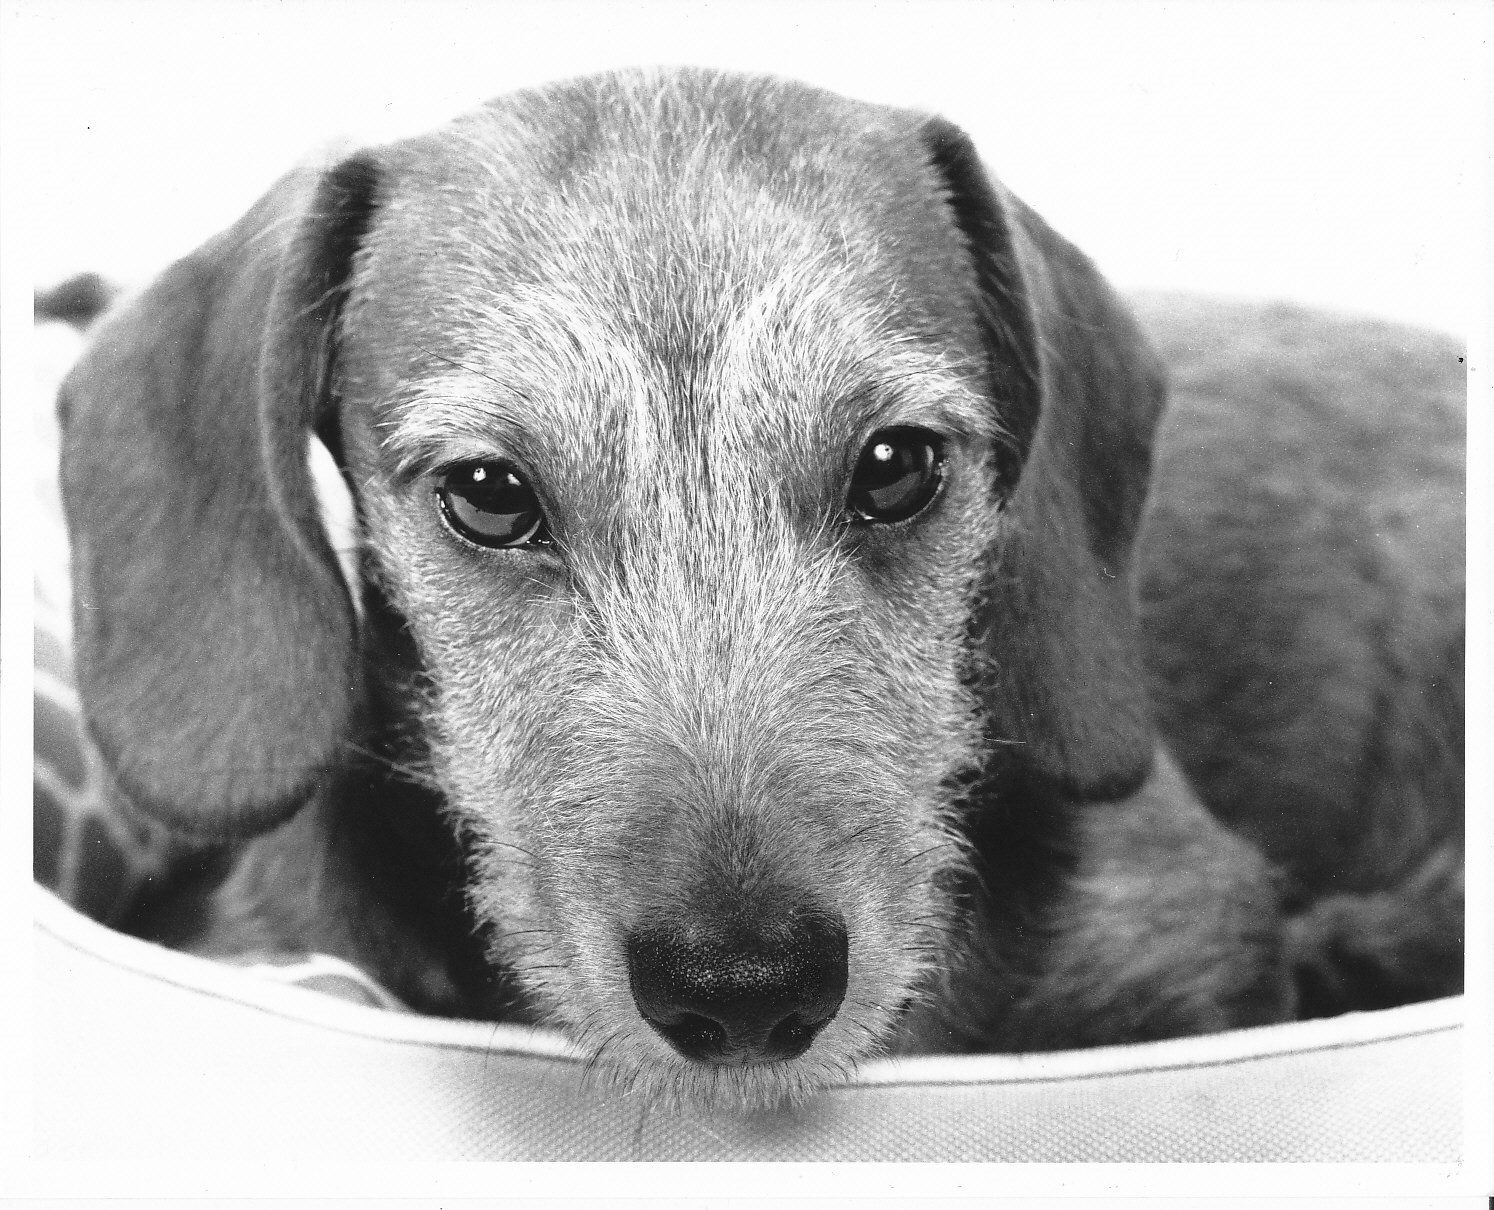 @essexcockney · Jan 27 Replying to @ILFORDPhoto here is little puppy sausage dog bailey looking cute ,he is a little terror... scanned 10x8 print Ilford classic FBVC paper.